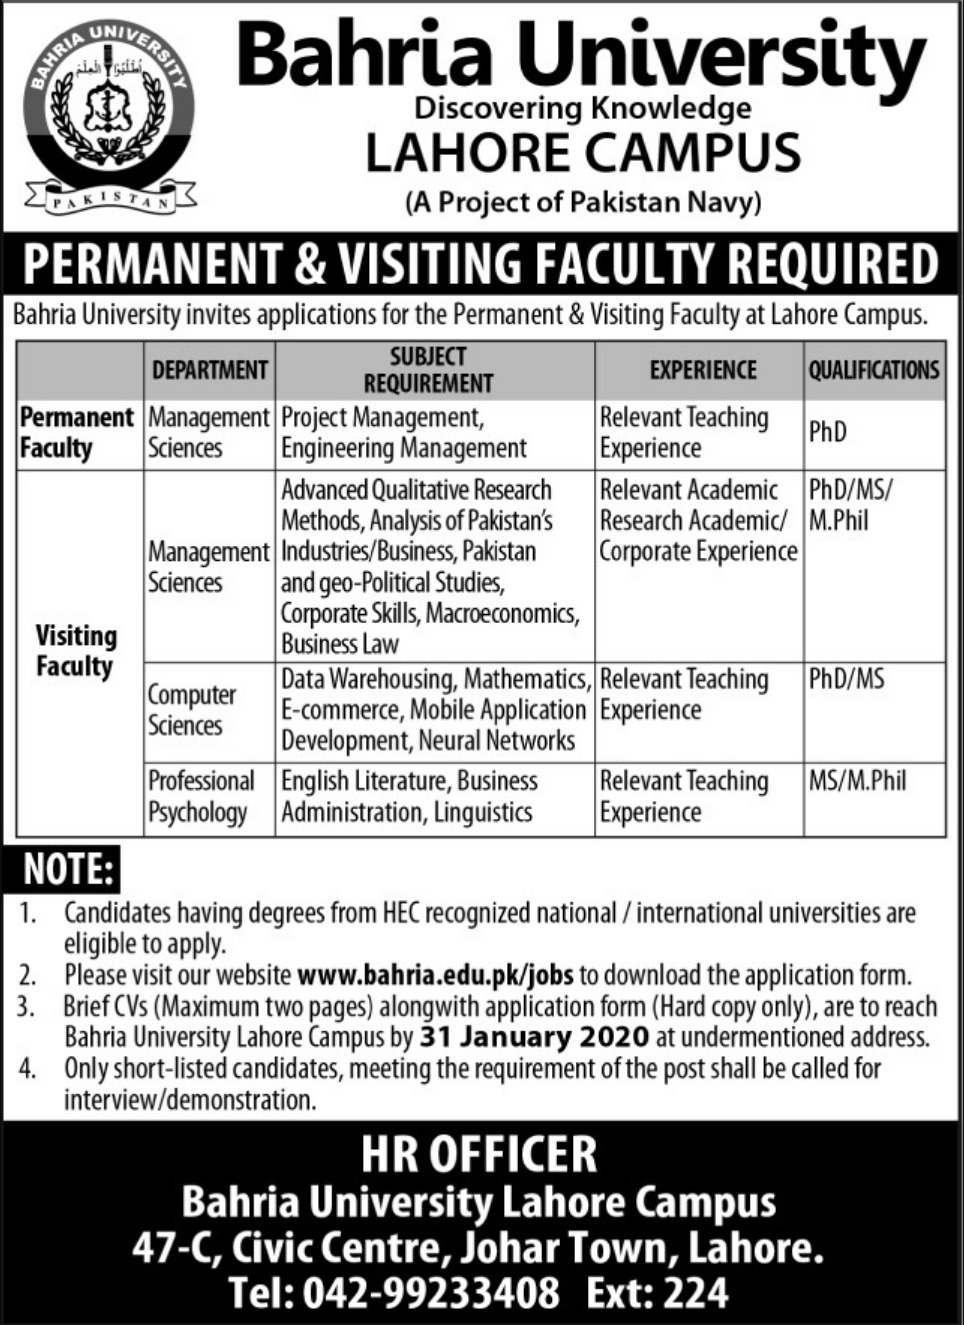 Careers at Bahria University Lahore 2020